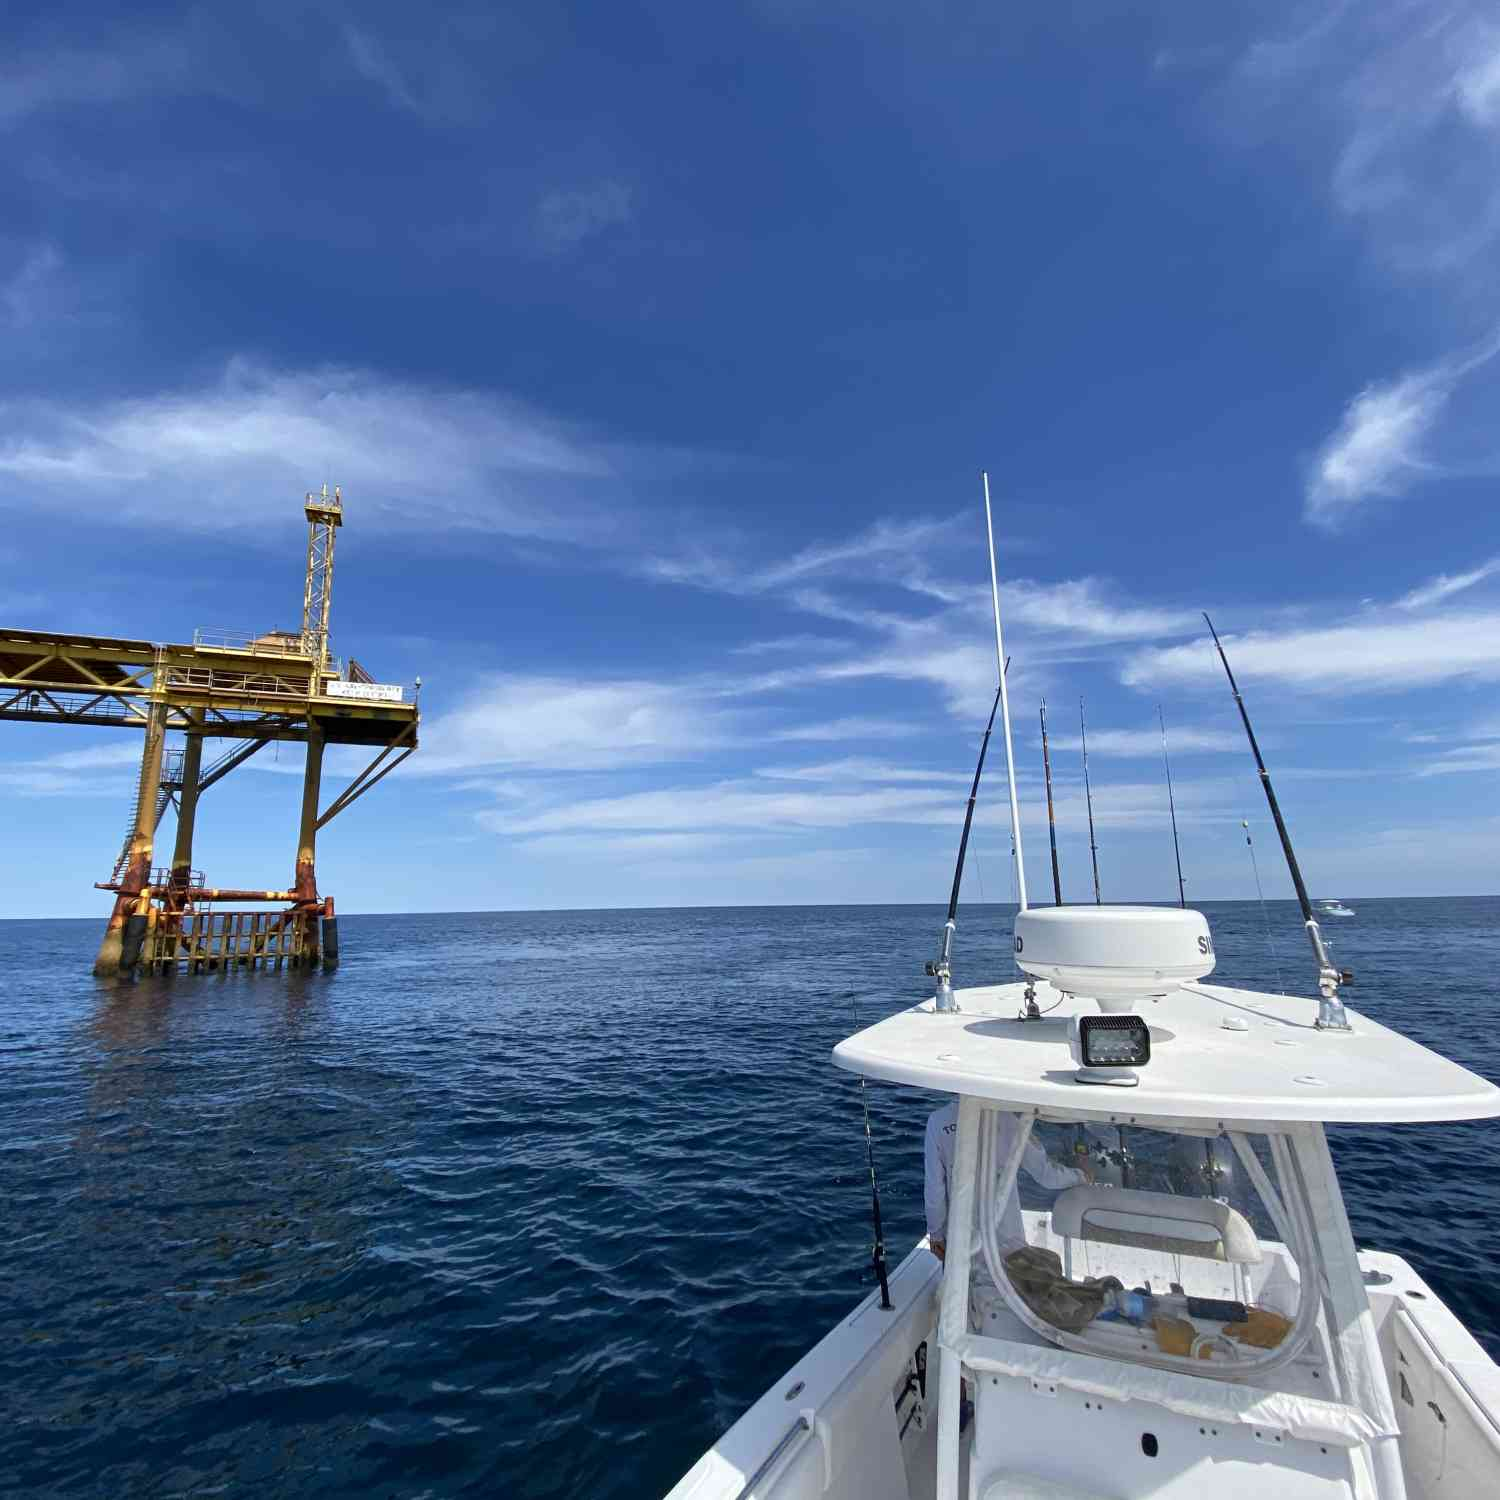 Title: Gulf Stream Trips! - On board their Sportsman Open 252 Center Console - Location: R-6 navy tower. Participating in the Photo Contest #SportsmanDecember2020